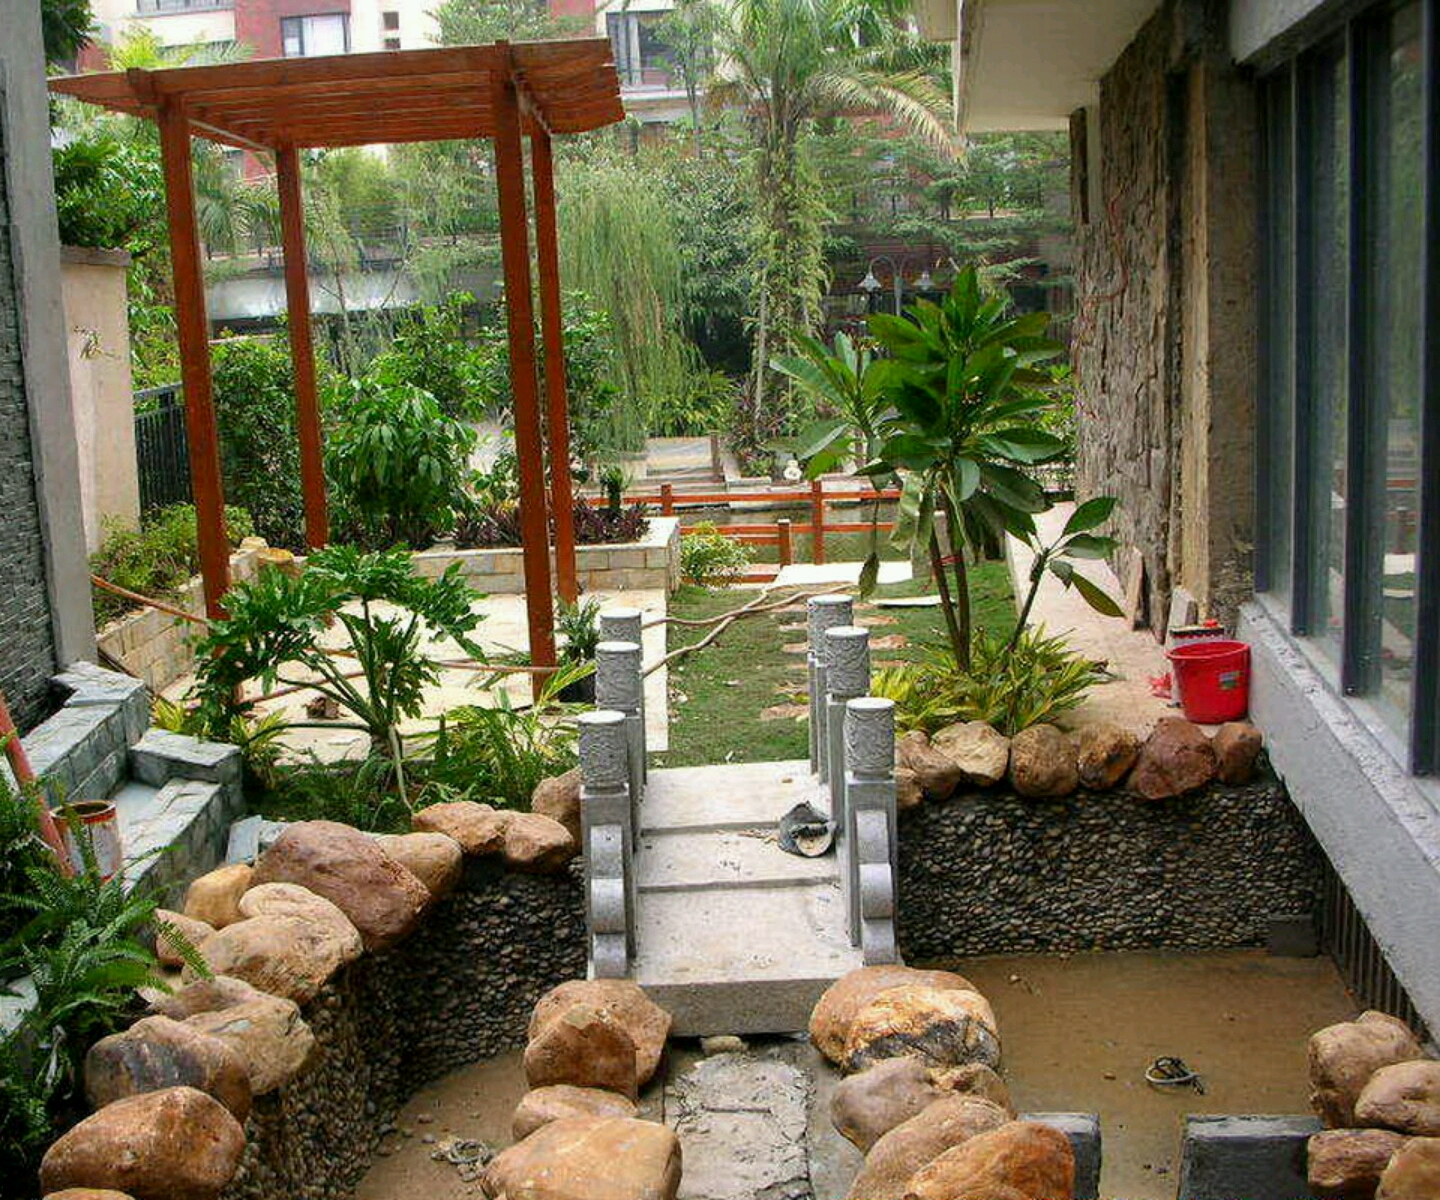 New home designs latest beautiful home gardens designs for Small home garden design ideas